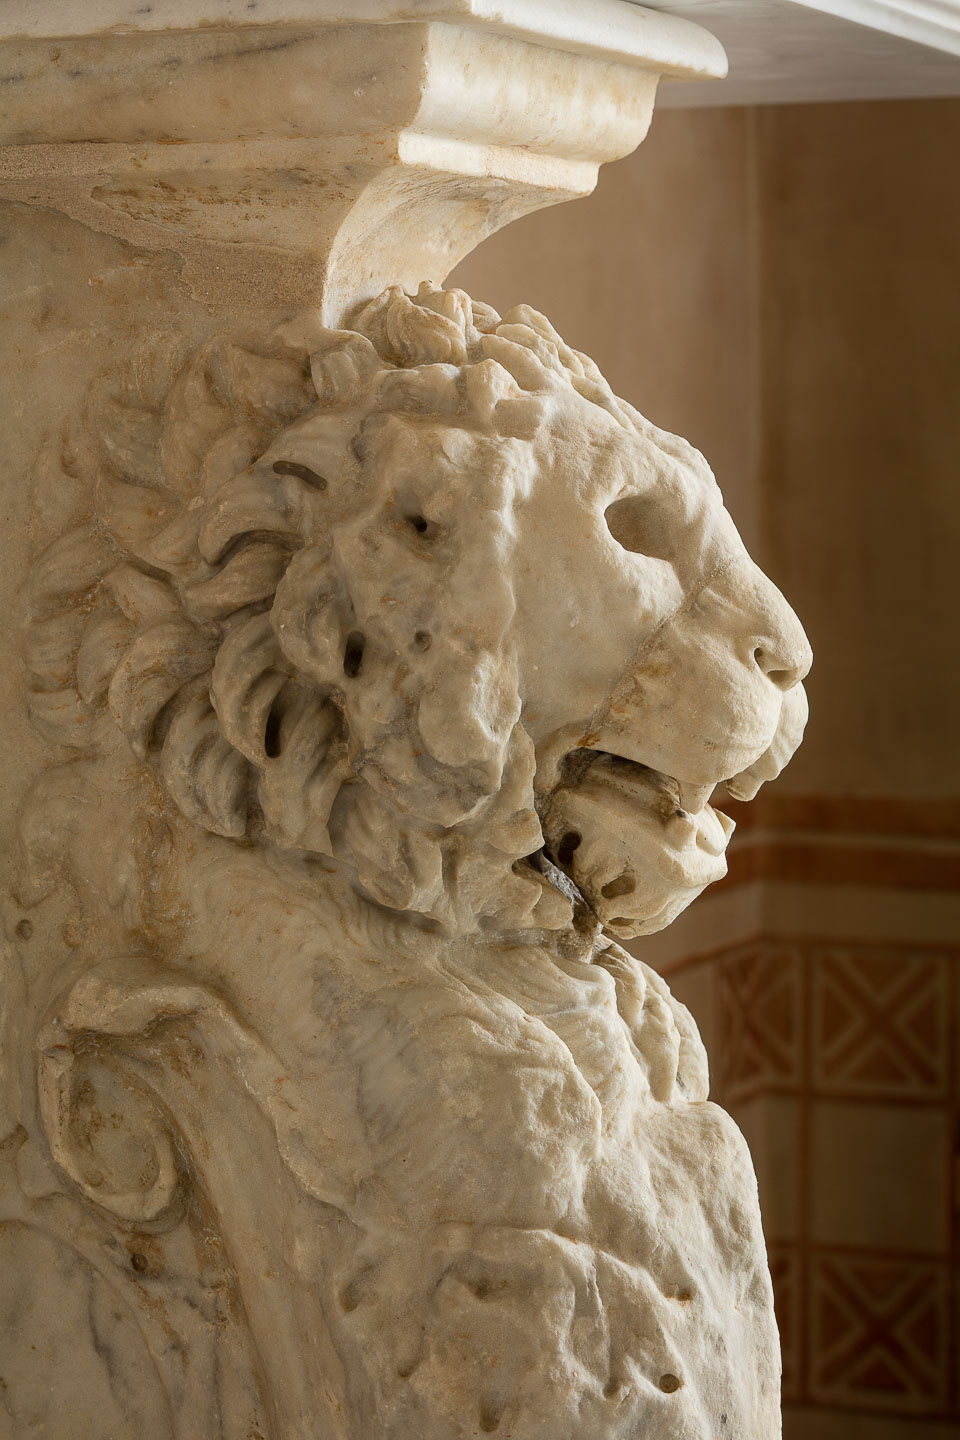 Villa Astor best luxury decor interior Italian real estate property Italian antique marble lion head enjoyment guests holiday party event The Heritage Collection rental